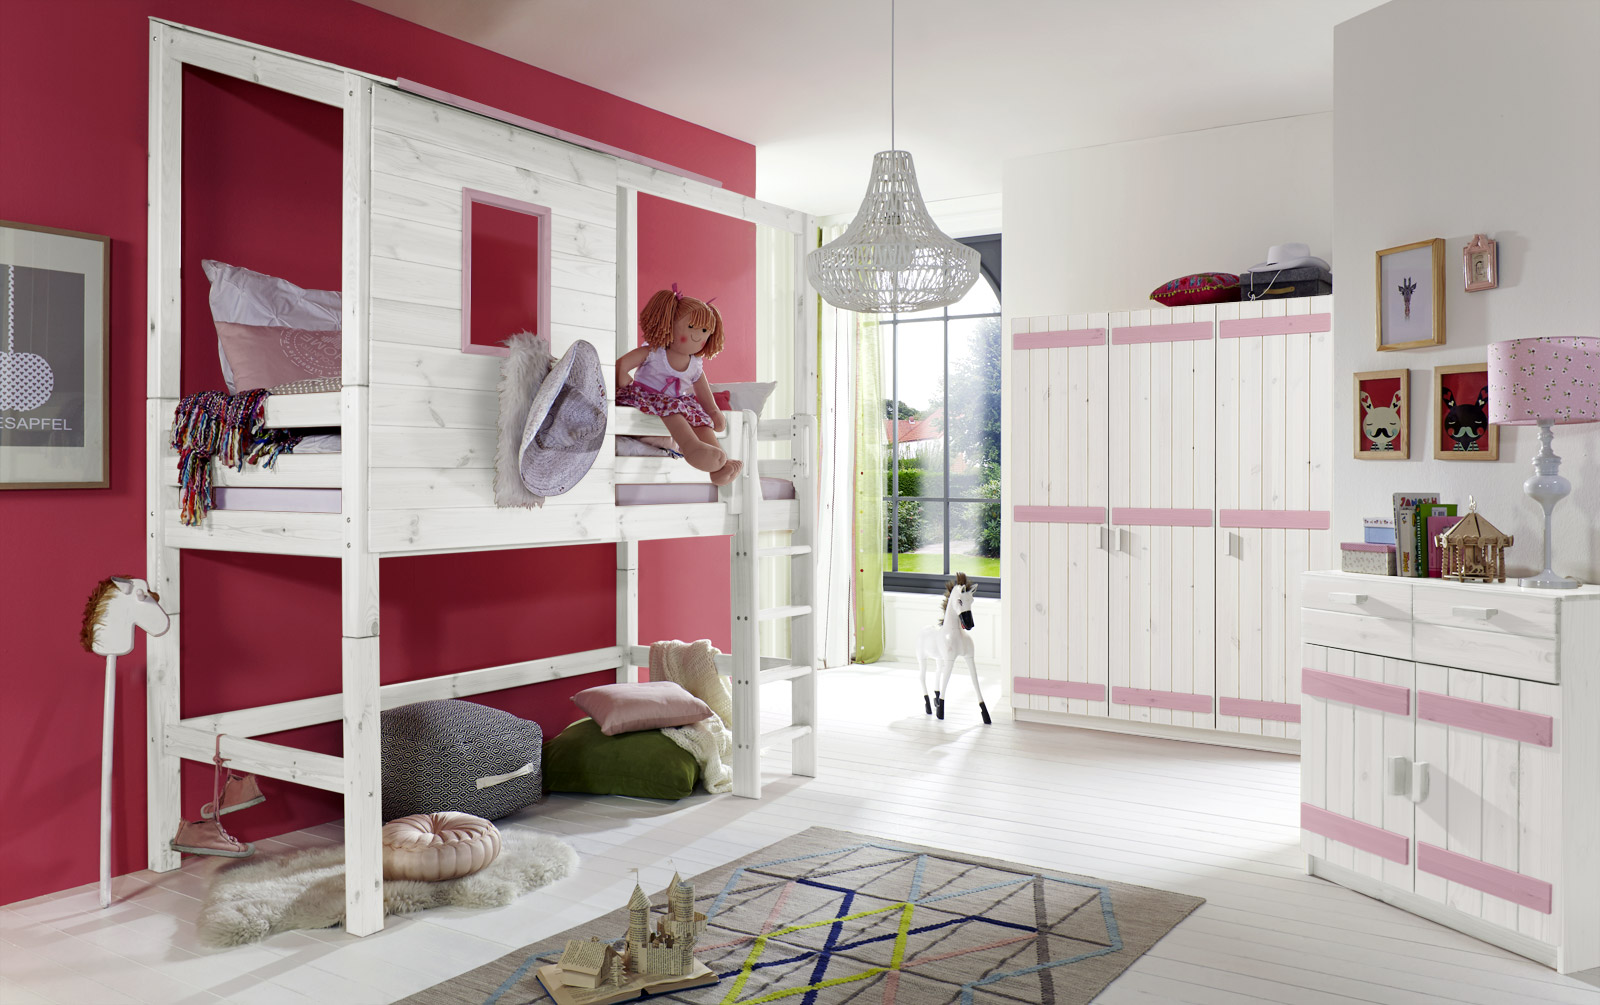 extra hohes abenteuer hochbett f r m dchen kids paradise. Black Bedroom Furniture Sets. Home Design Ideas